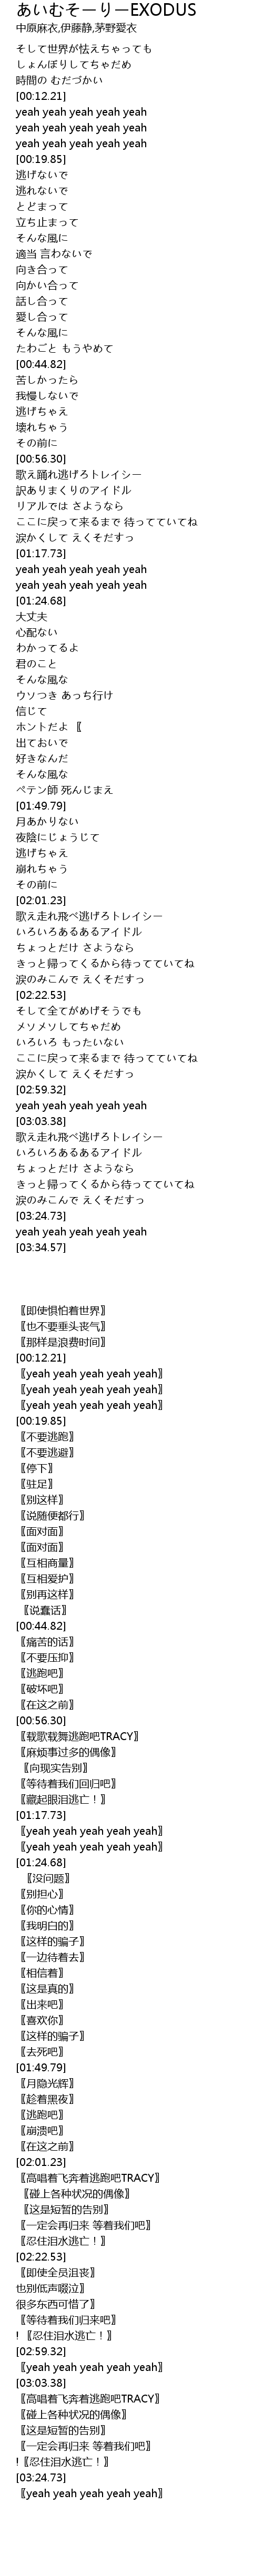 あいむそーりーEXODUS EXODUS Lyrics